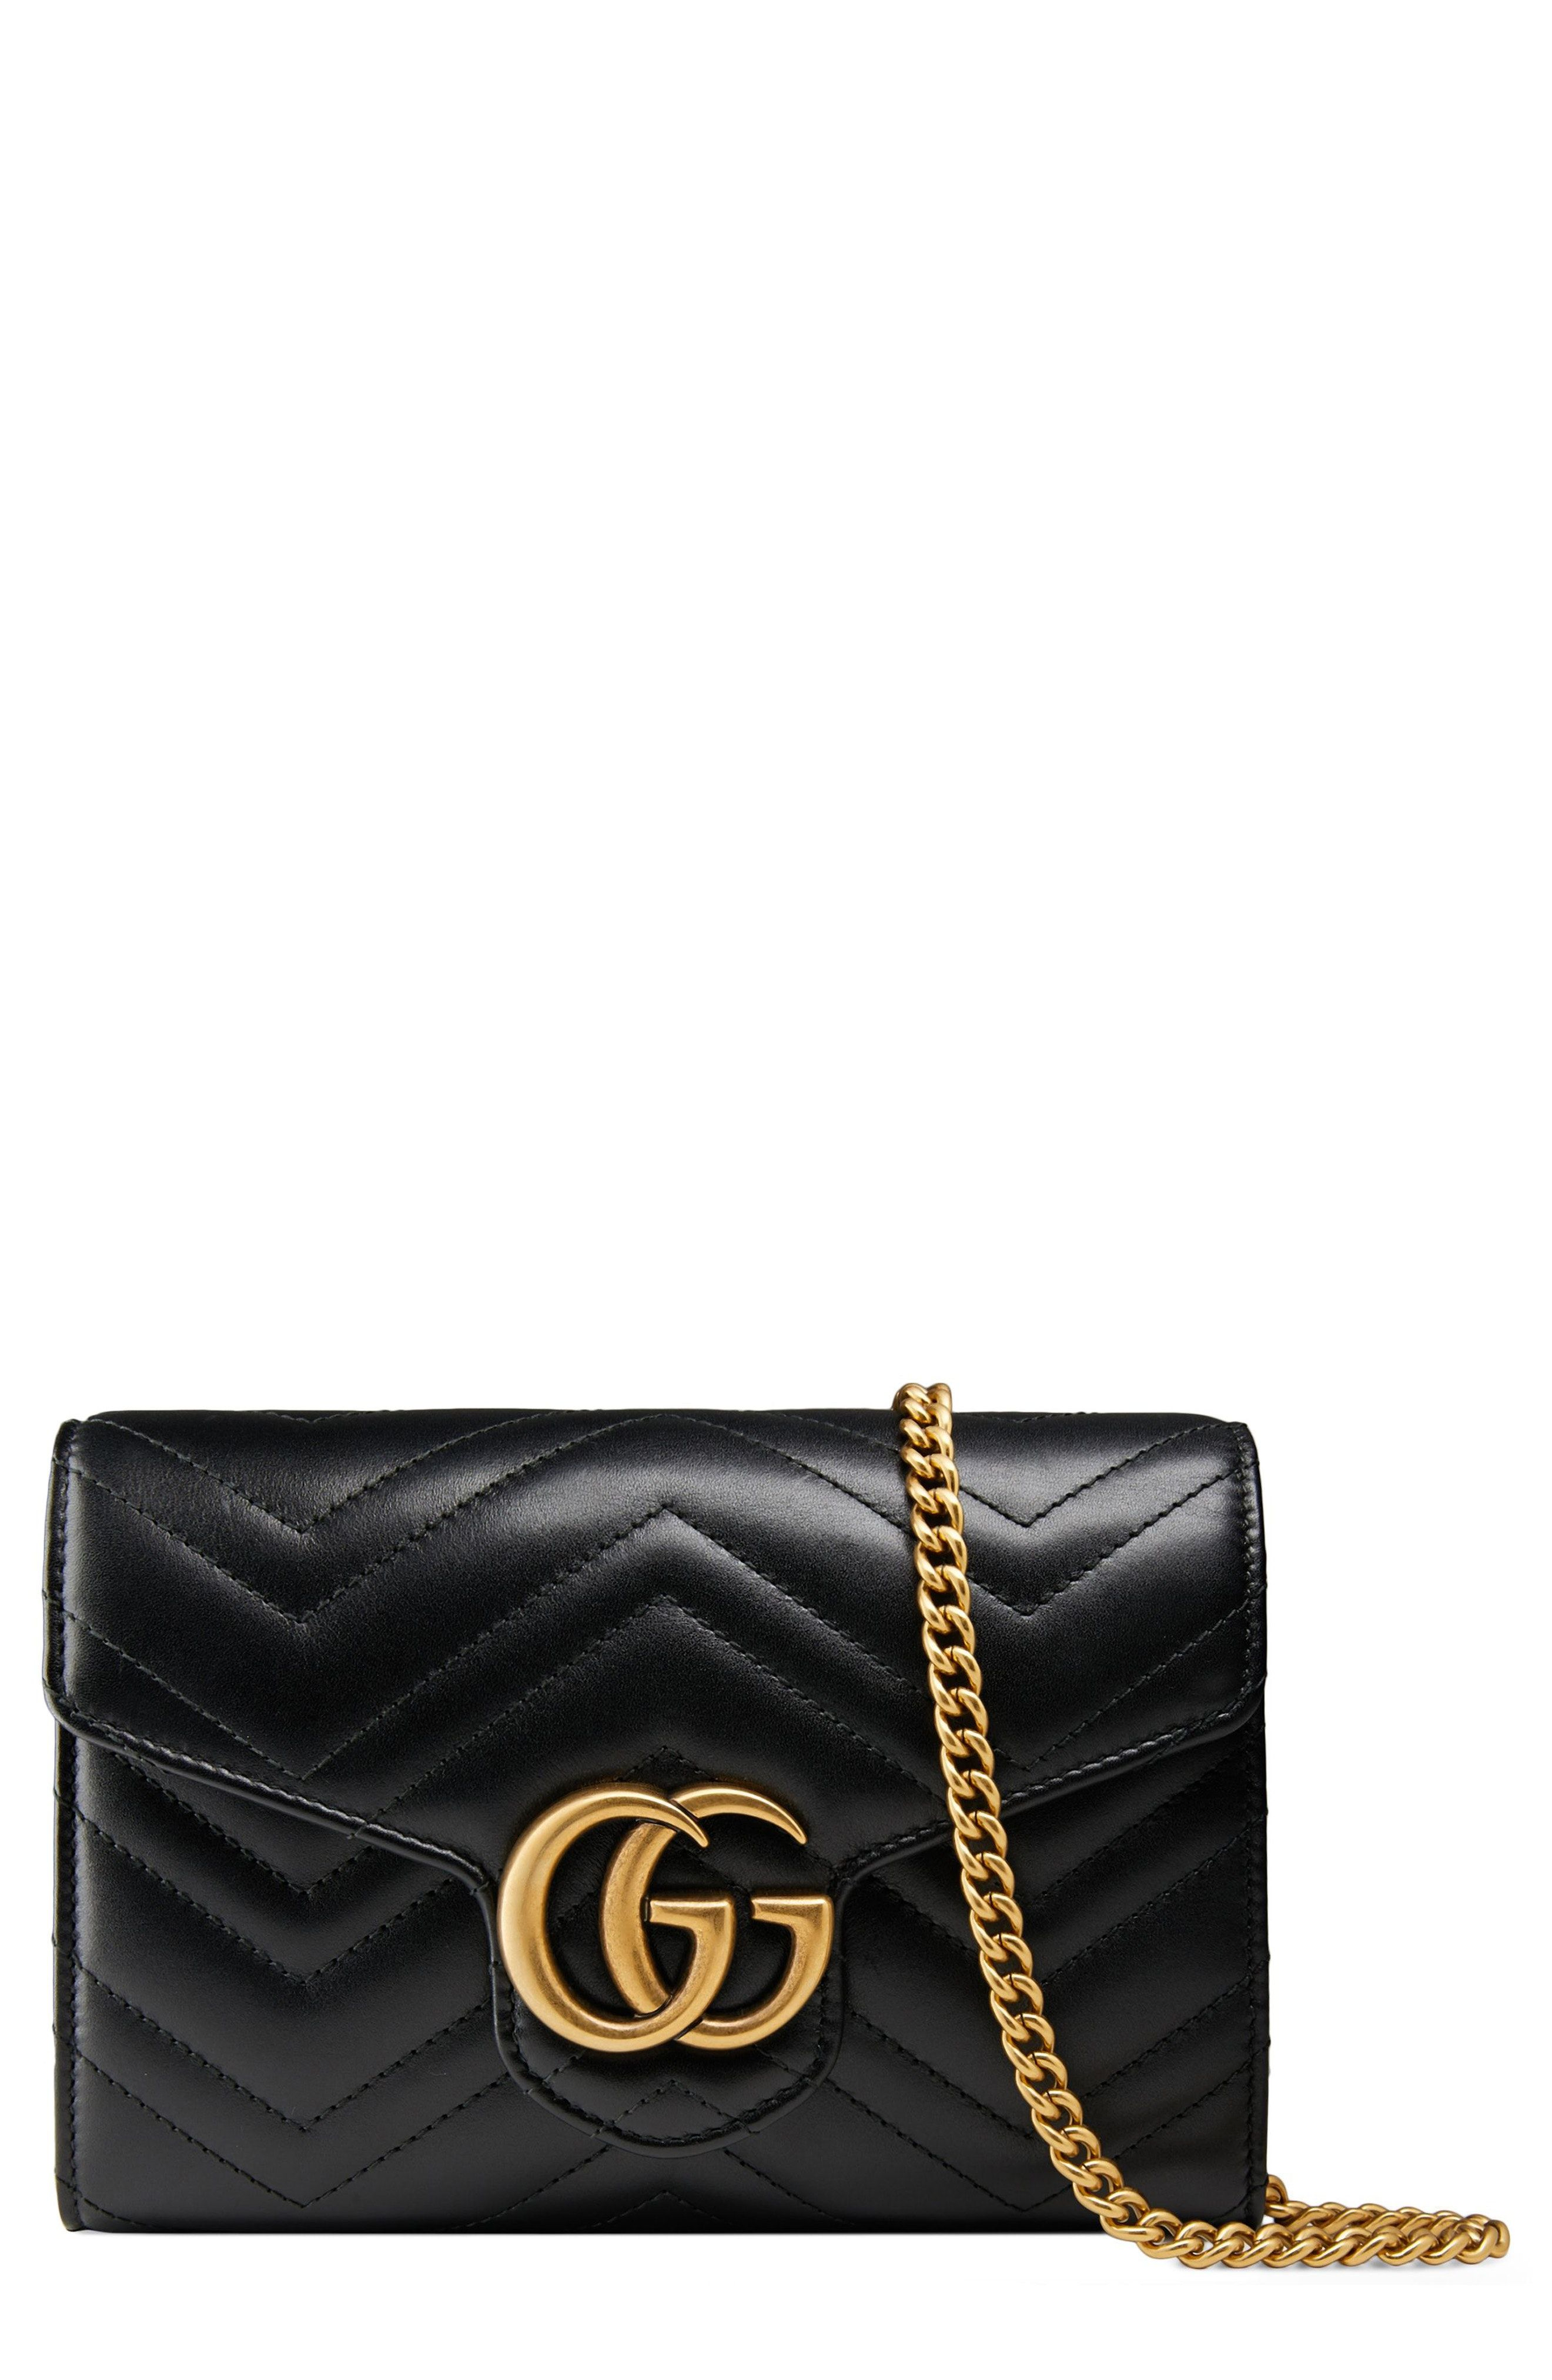 d4e4b639bec New Gucci GG Marmont Matelass  Leather Wallet on a Chain fashion online.    1400   shop.seehandbags